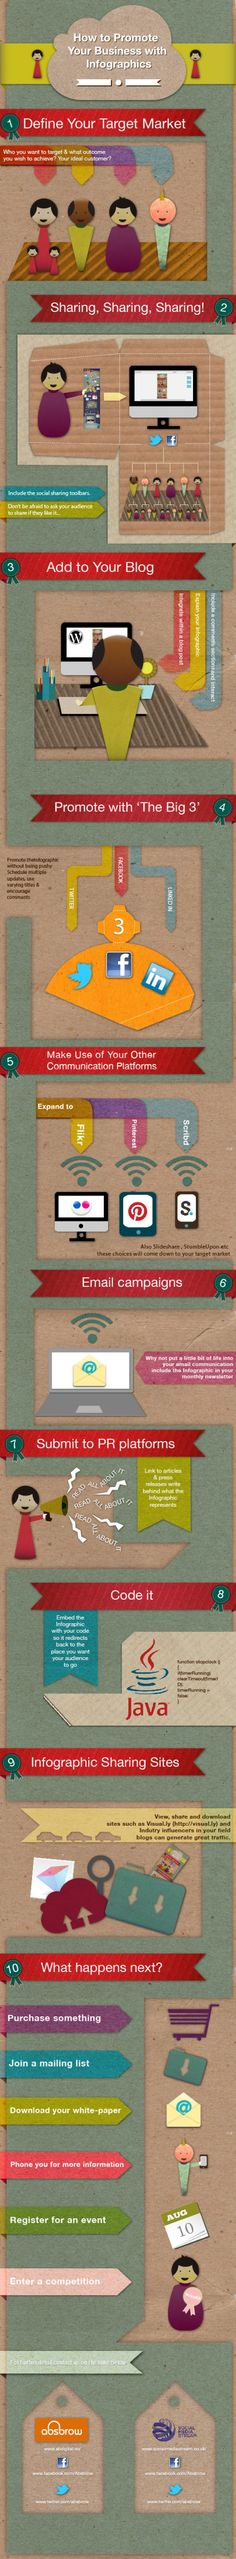 How To Promote Your Business With Infographics - An infographic (go figure).